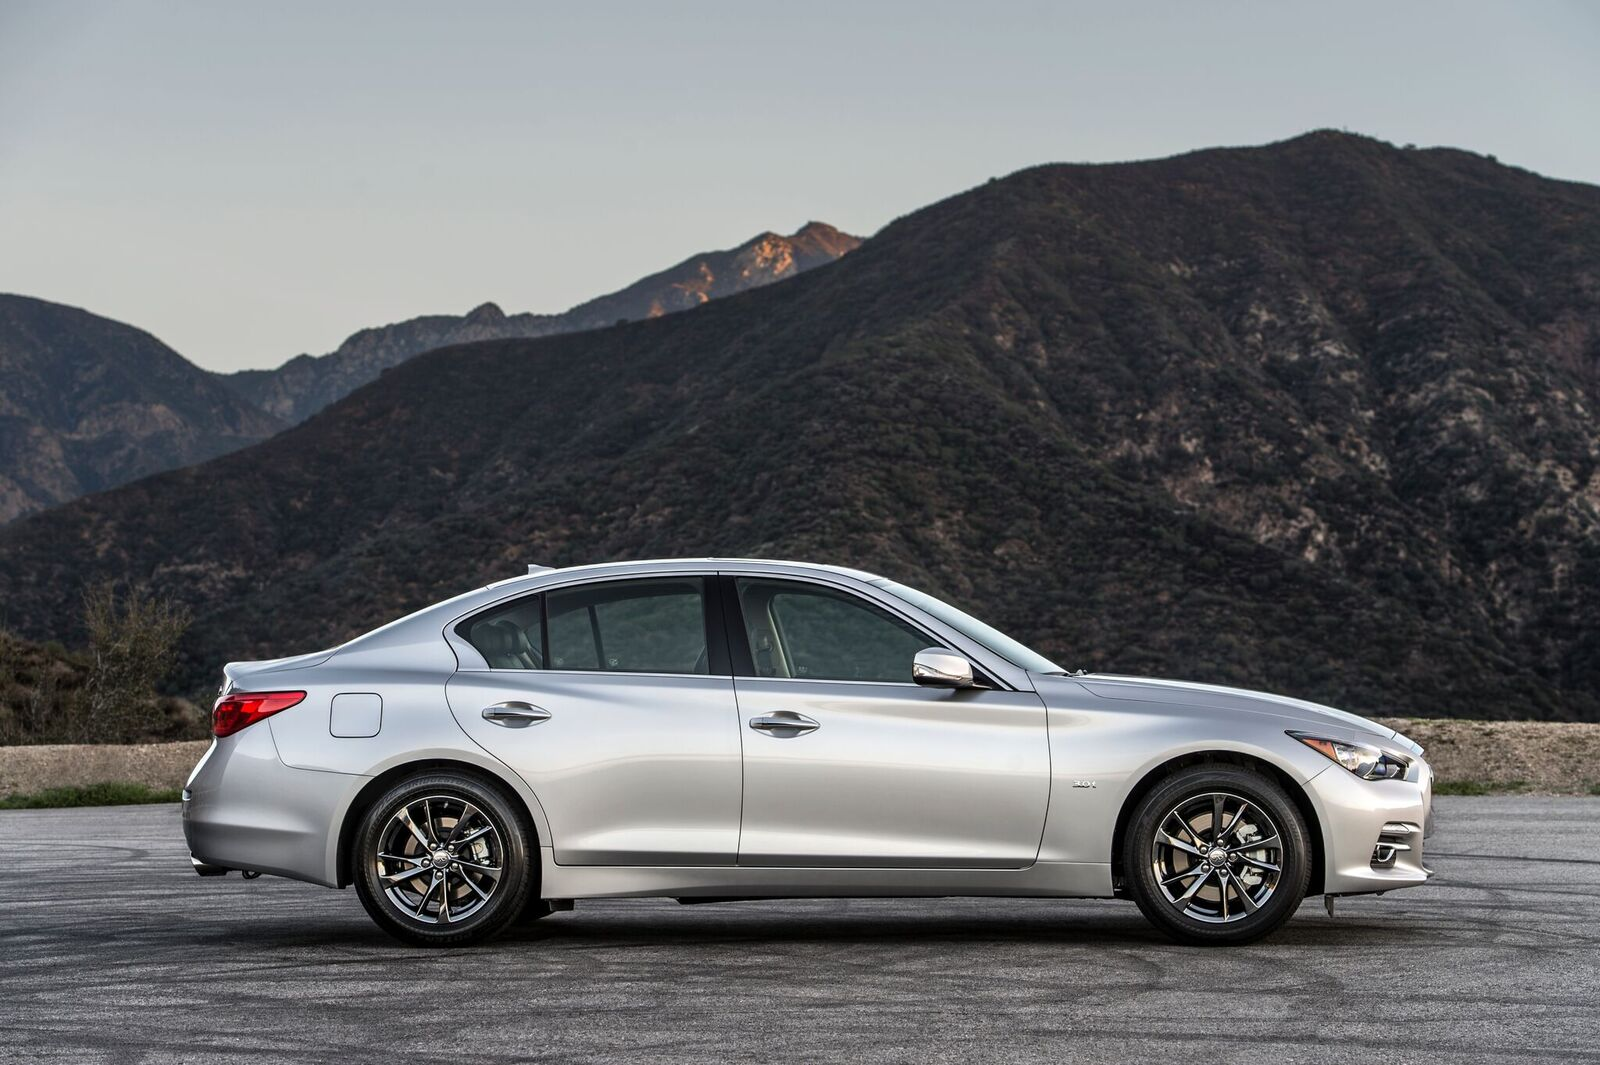 Infiniti Turns up the Volume with New Sport Exhaust Kit for